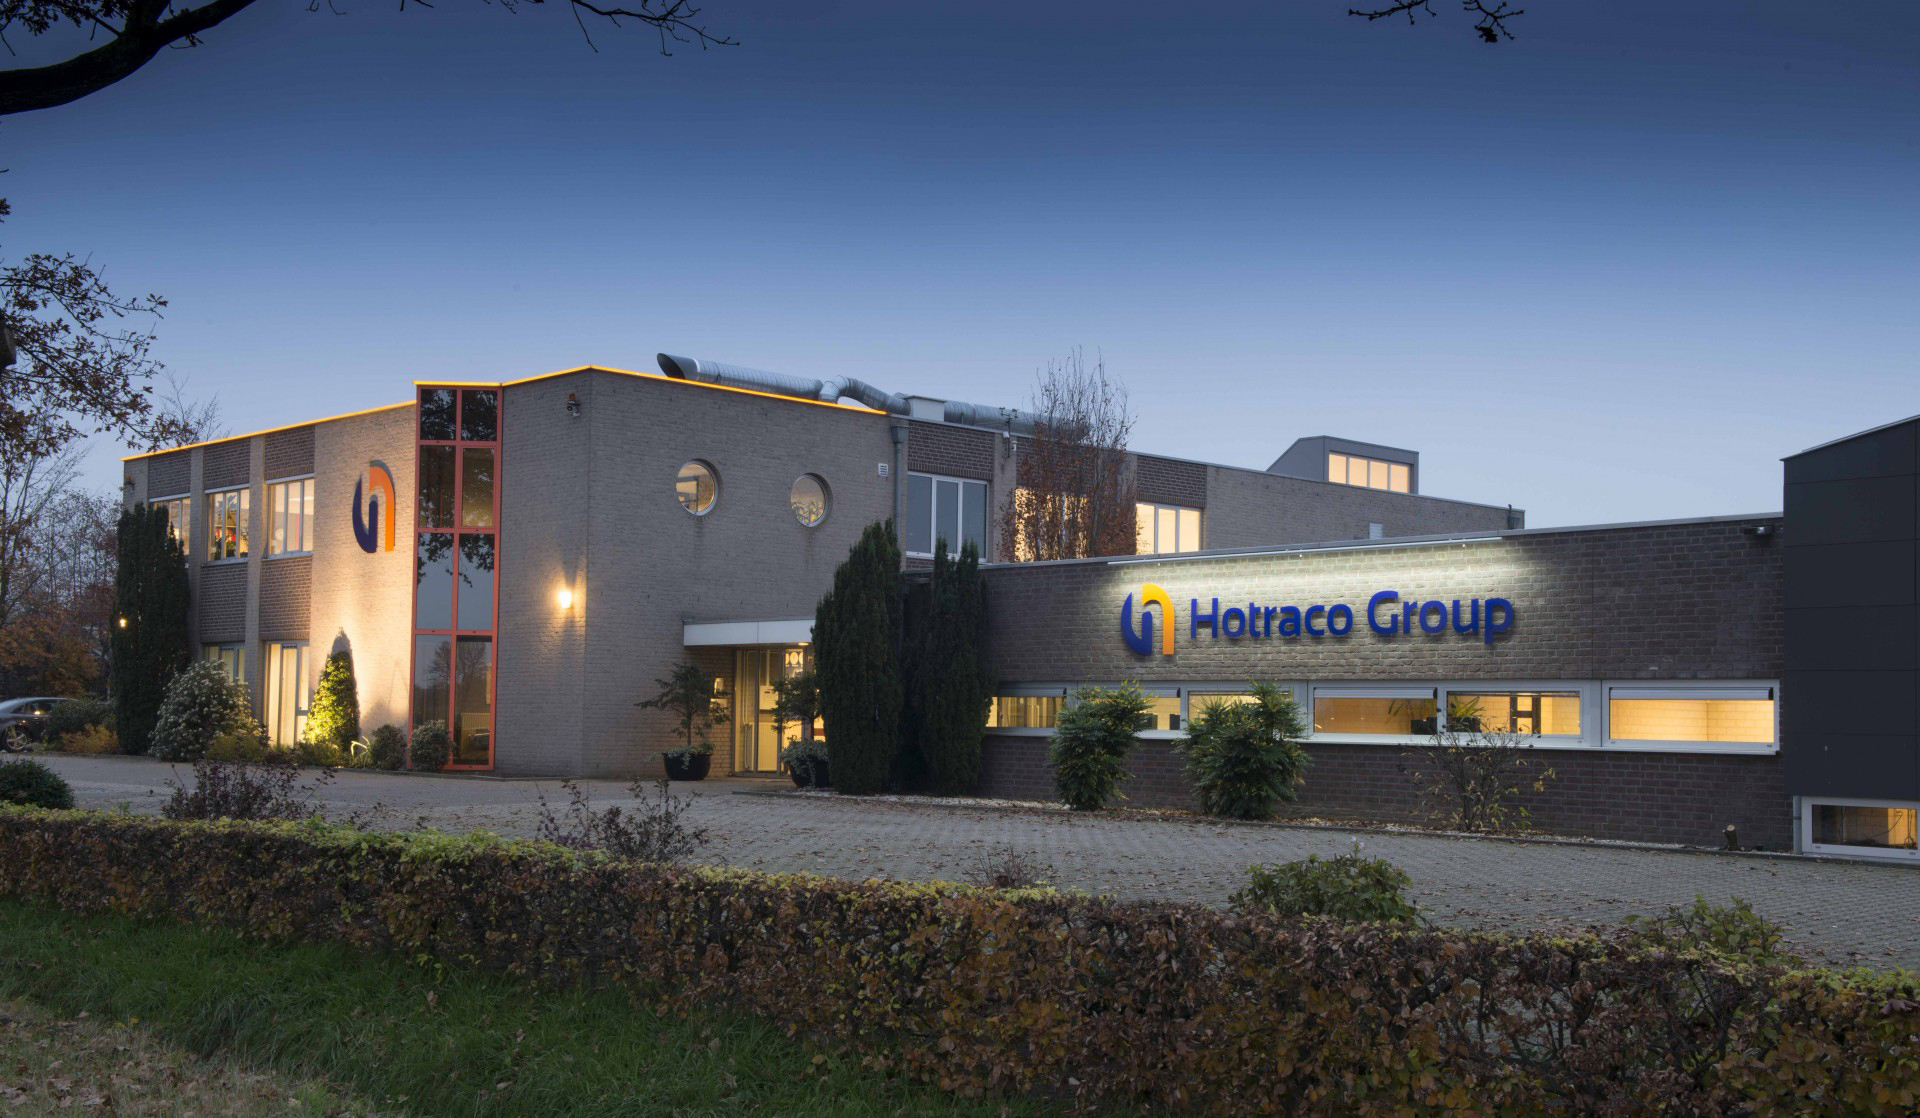 Lichtreclame - Hotraco Group, Horst